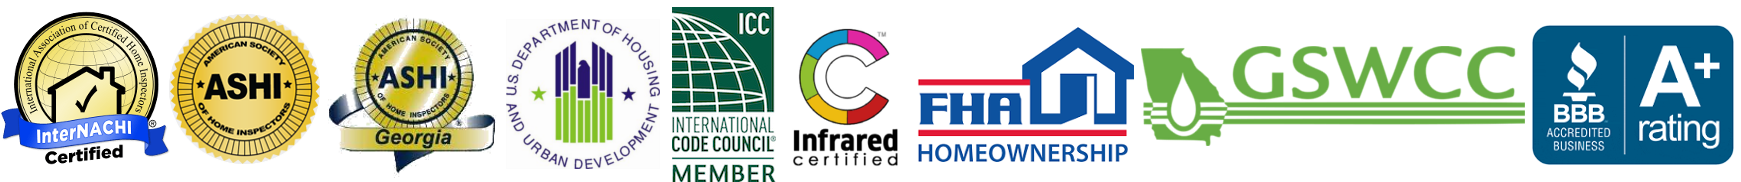 Home inspection badges and certifications